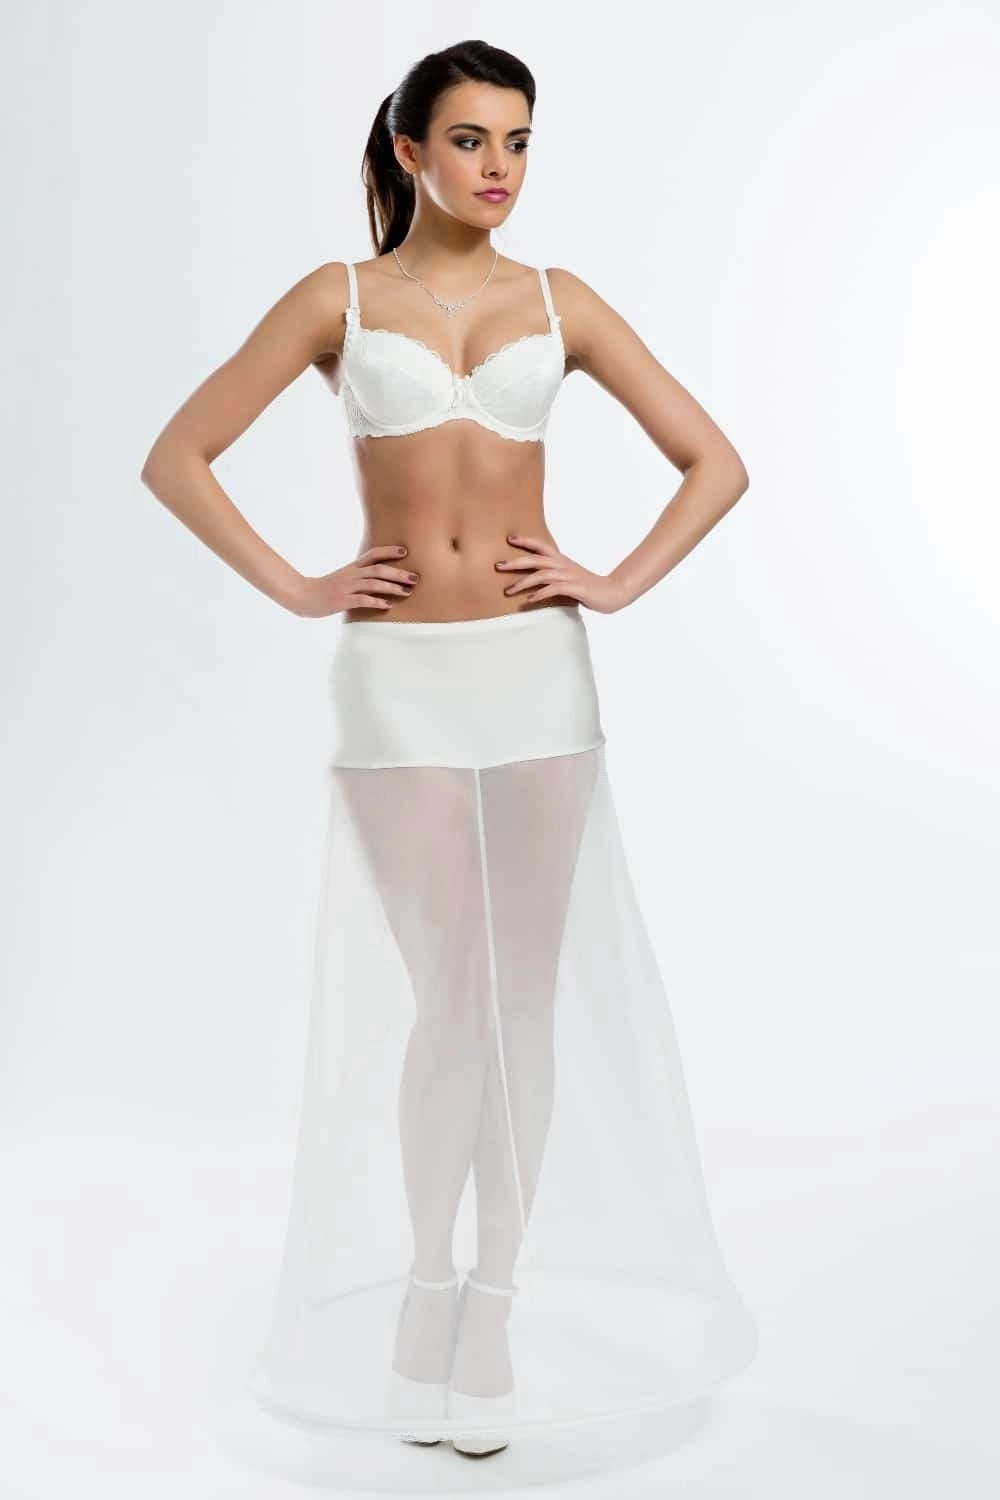 H2-220 BP2-220 A line bridal underskirt with one hoop BP2-220